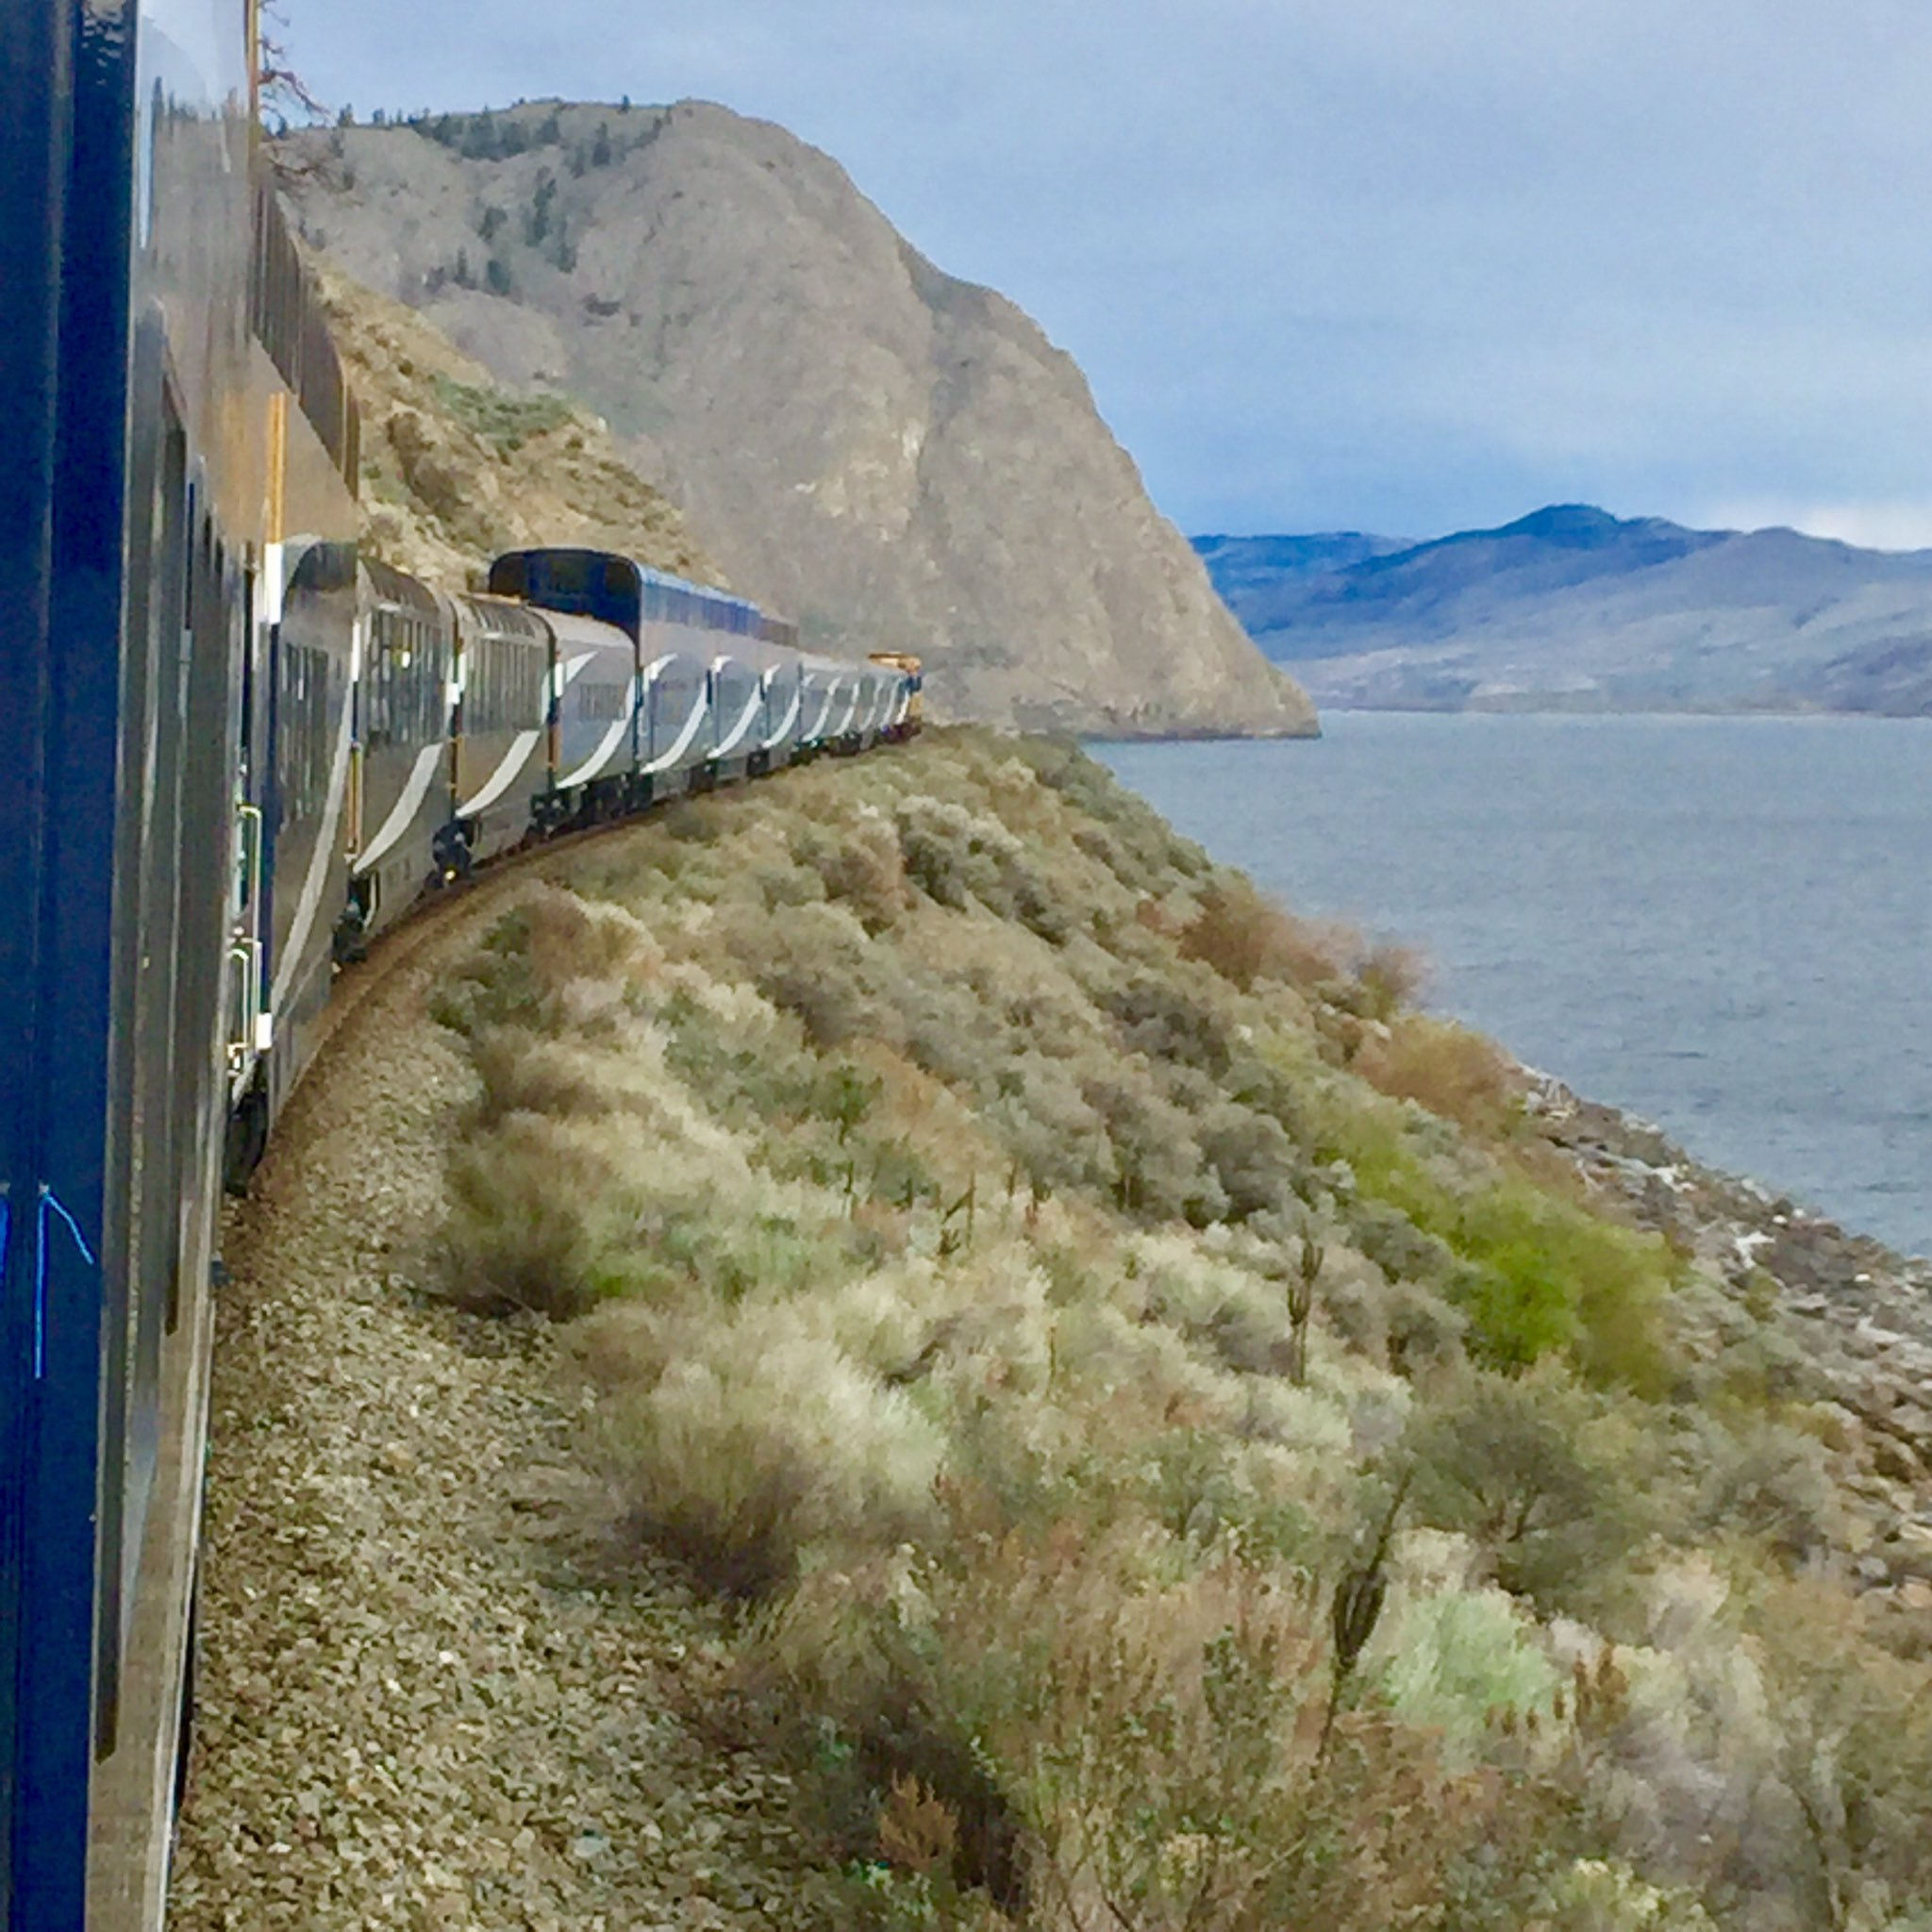 Guess what my job is aboard the #RockyMountaineer? To indulge in the most luxurious journey I've ever experienced! #travel https://t.co/3QgNGGRodv